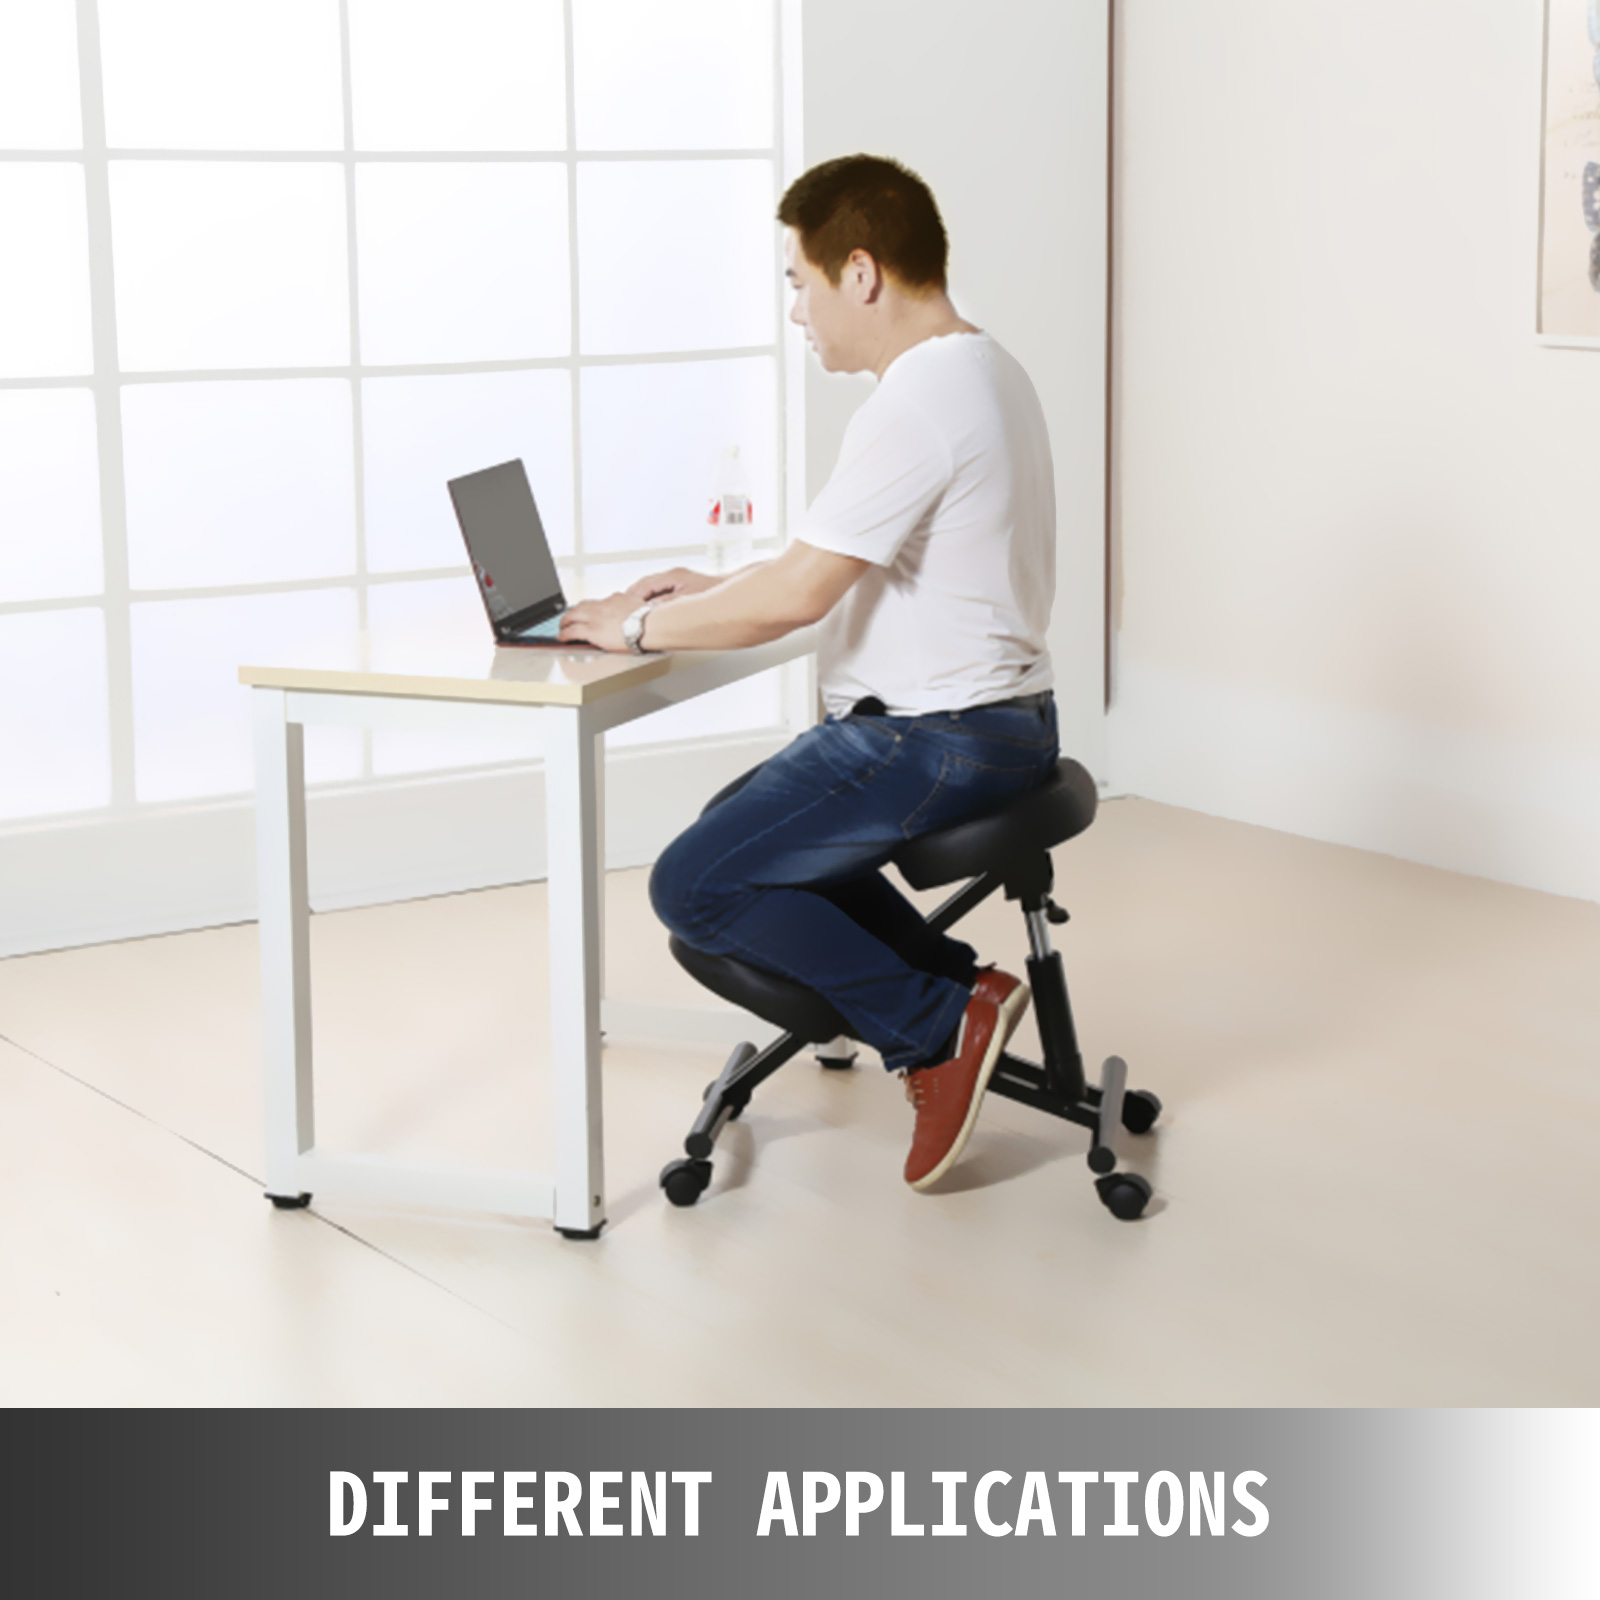 kneeling chair m100 7 - VEVOR Ergonomic Kneeling Chair Adjustable Kneeling Stool Thick Comfortable Cushions for Office Home Balancing Back Body Shaping